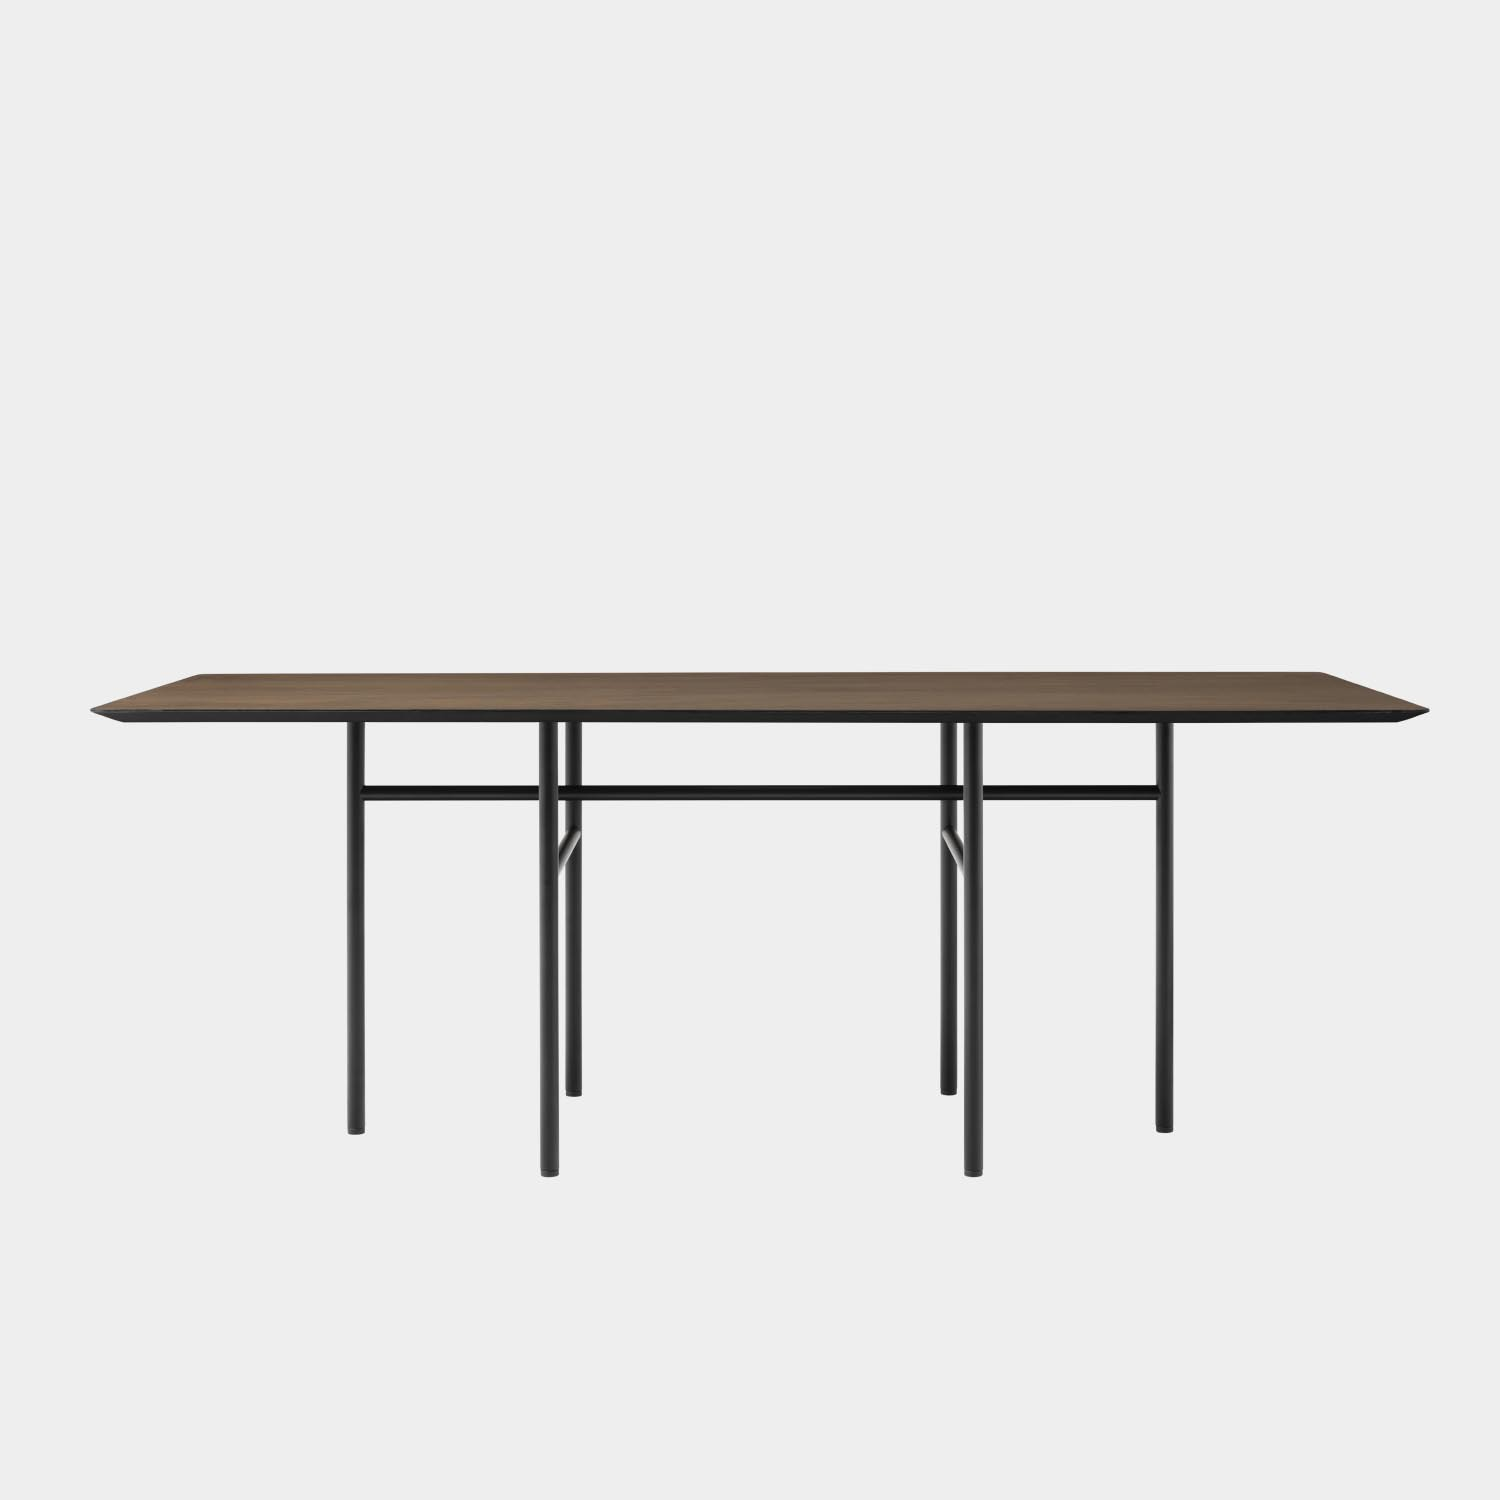 Snaregade Rectangular Dining Table, Black/Dark Stained Oak